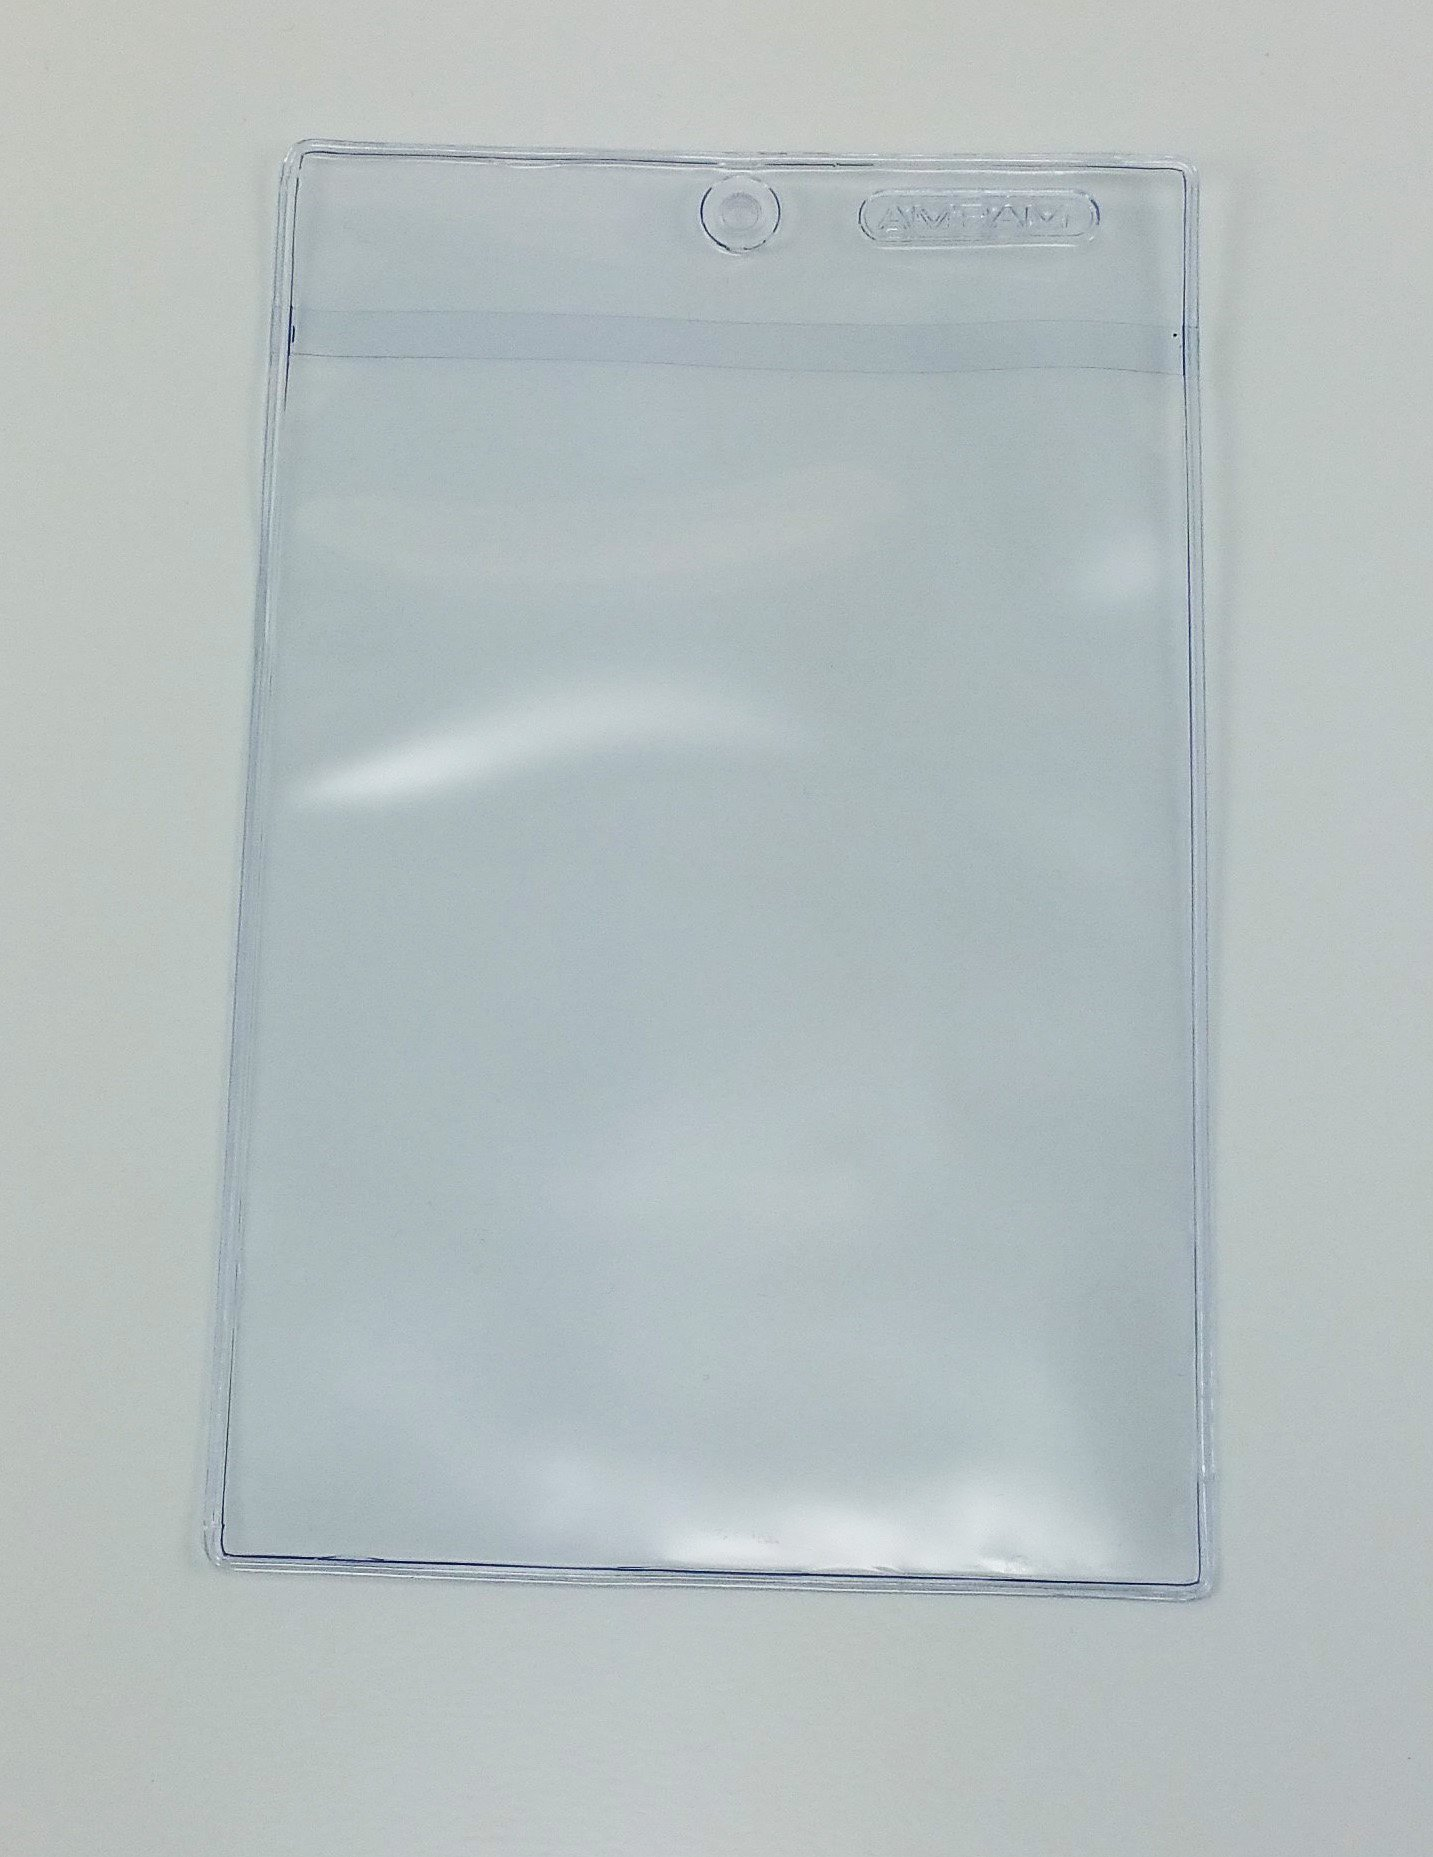 Amram 4 Inch x 6 Inch Clear Vinyl Tag Holders 50 Pieces Plus 100 Cable Ties for Hanging